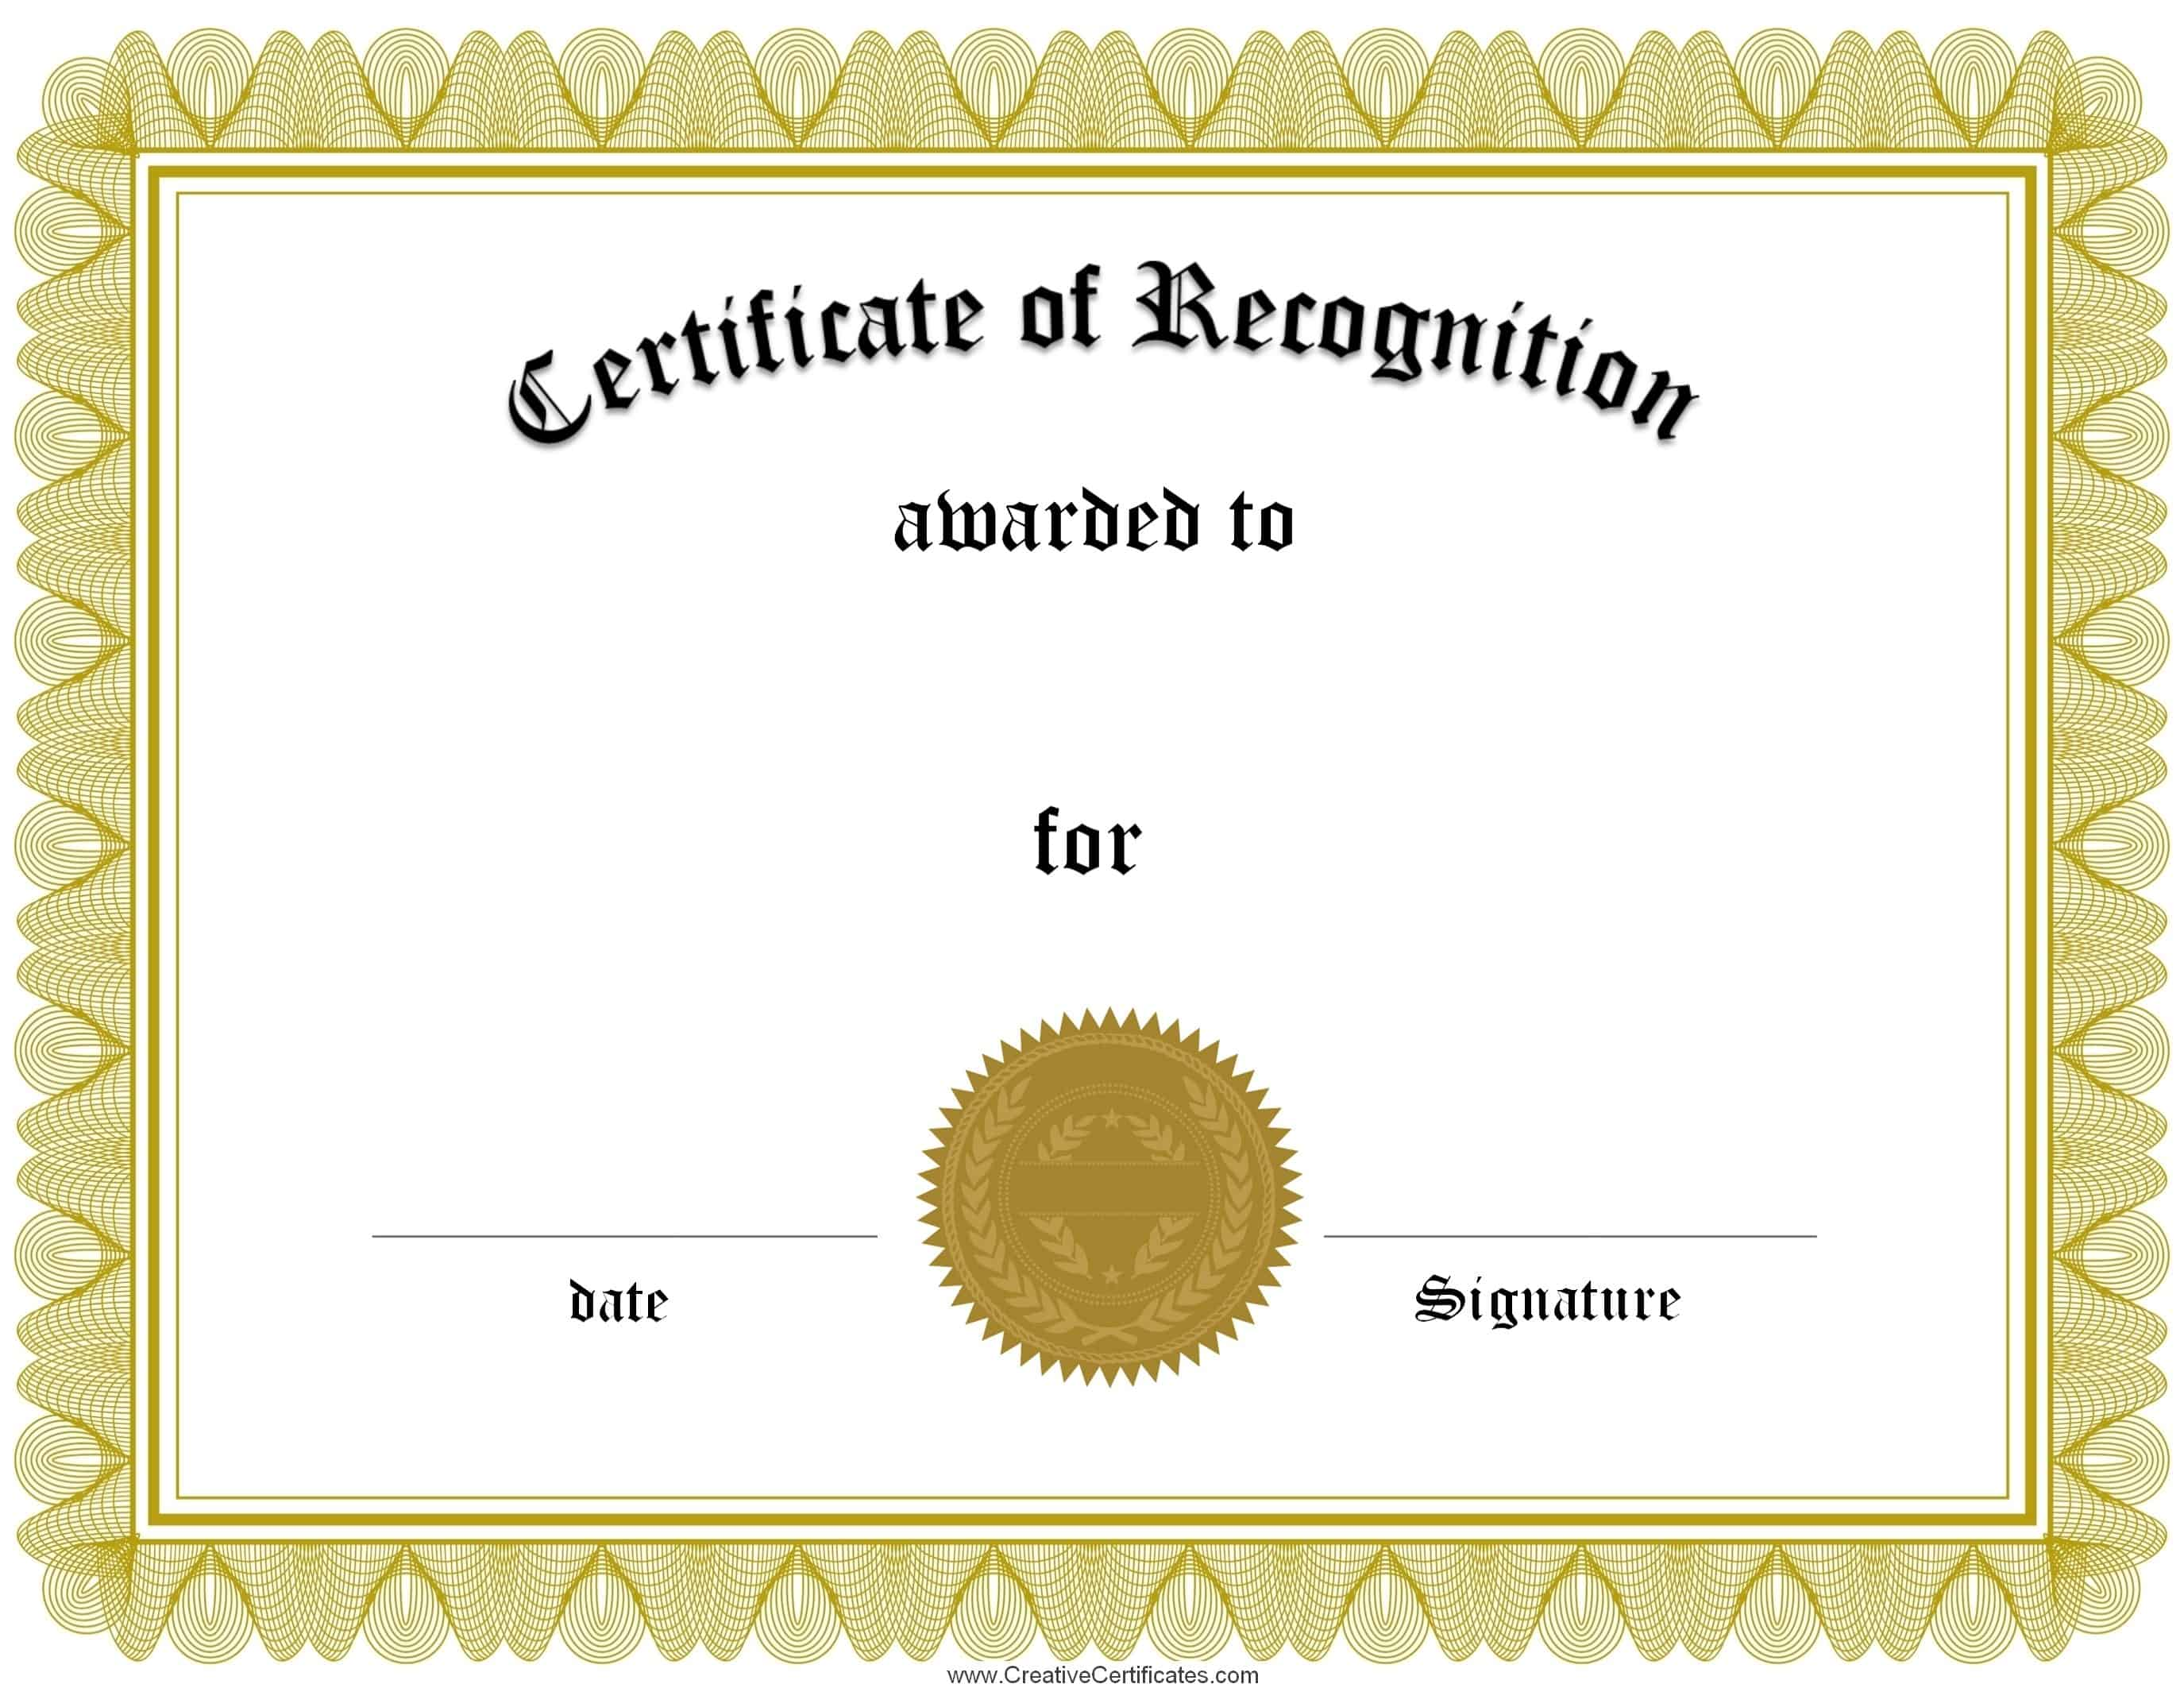 certificate of appreciation template - free certificate of recognition template customize online